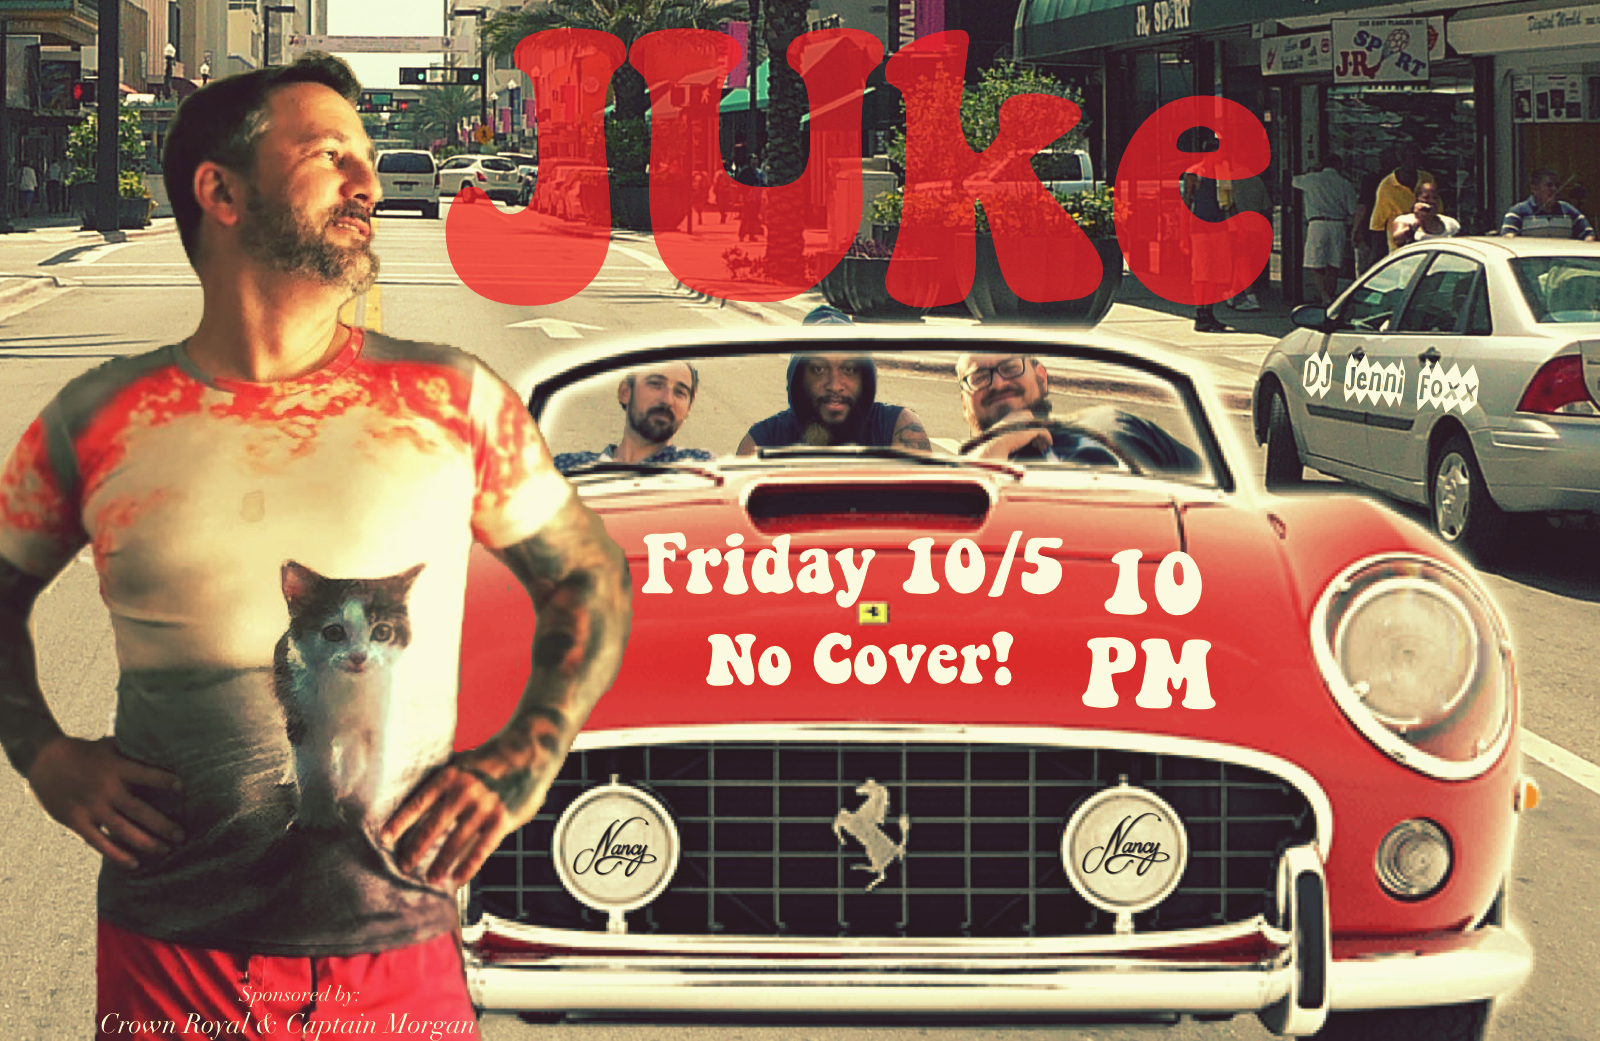 JUKE - FRIDAY OCTOBER 5TH - 10PM - NO COVER - DJ JENNI FOXX